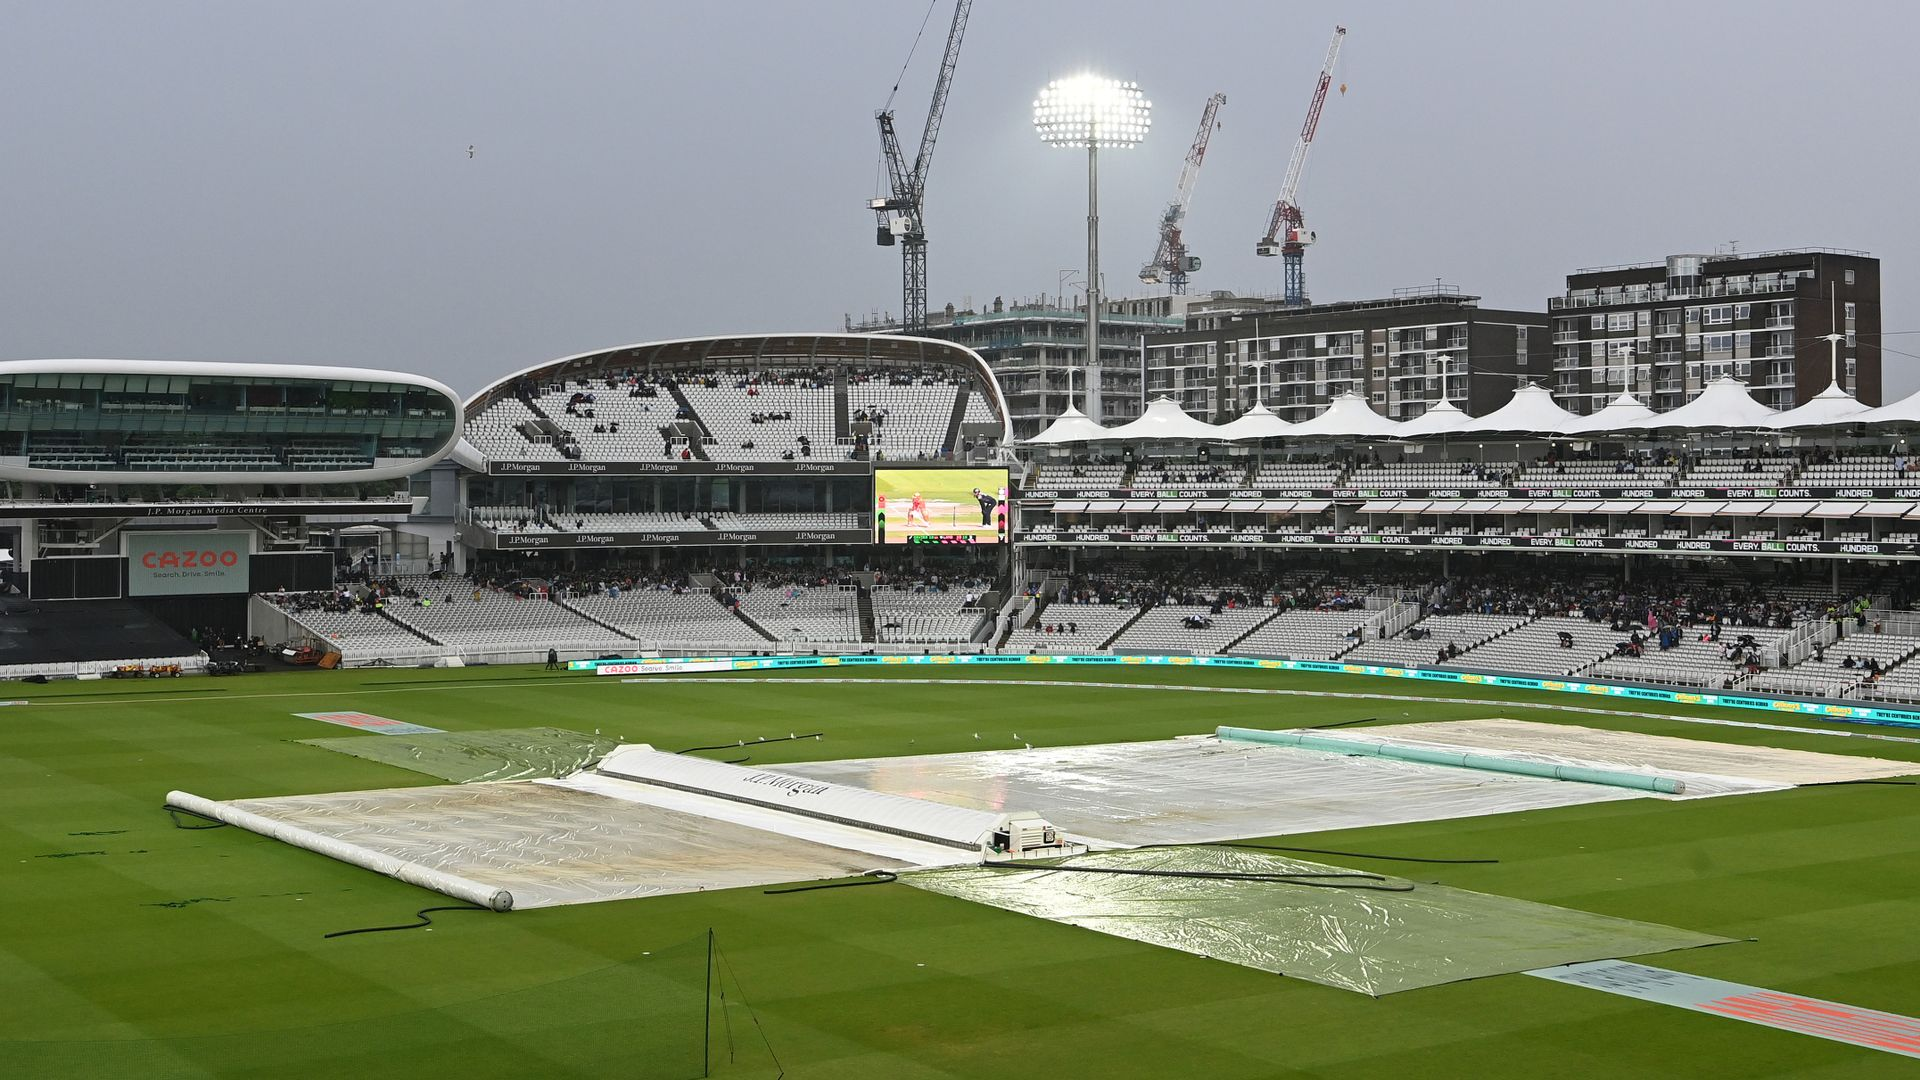 Spirit vs Invincibles clash in The Hundred rained off